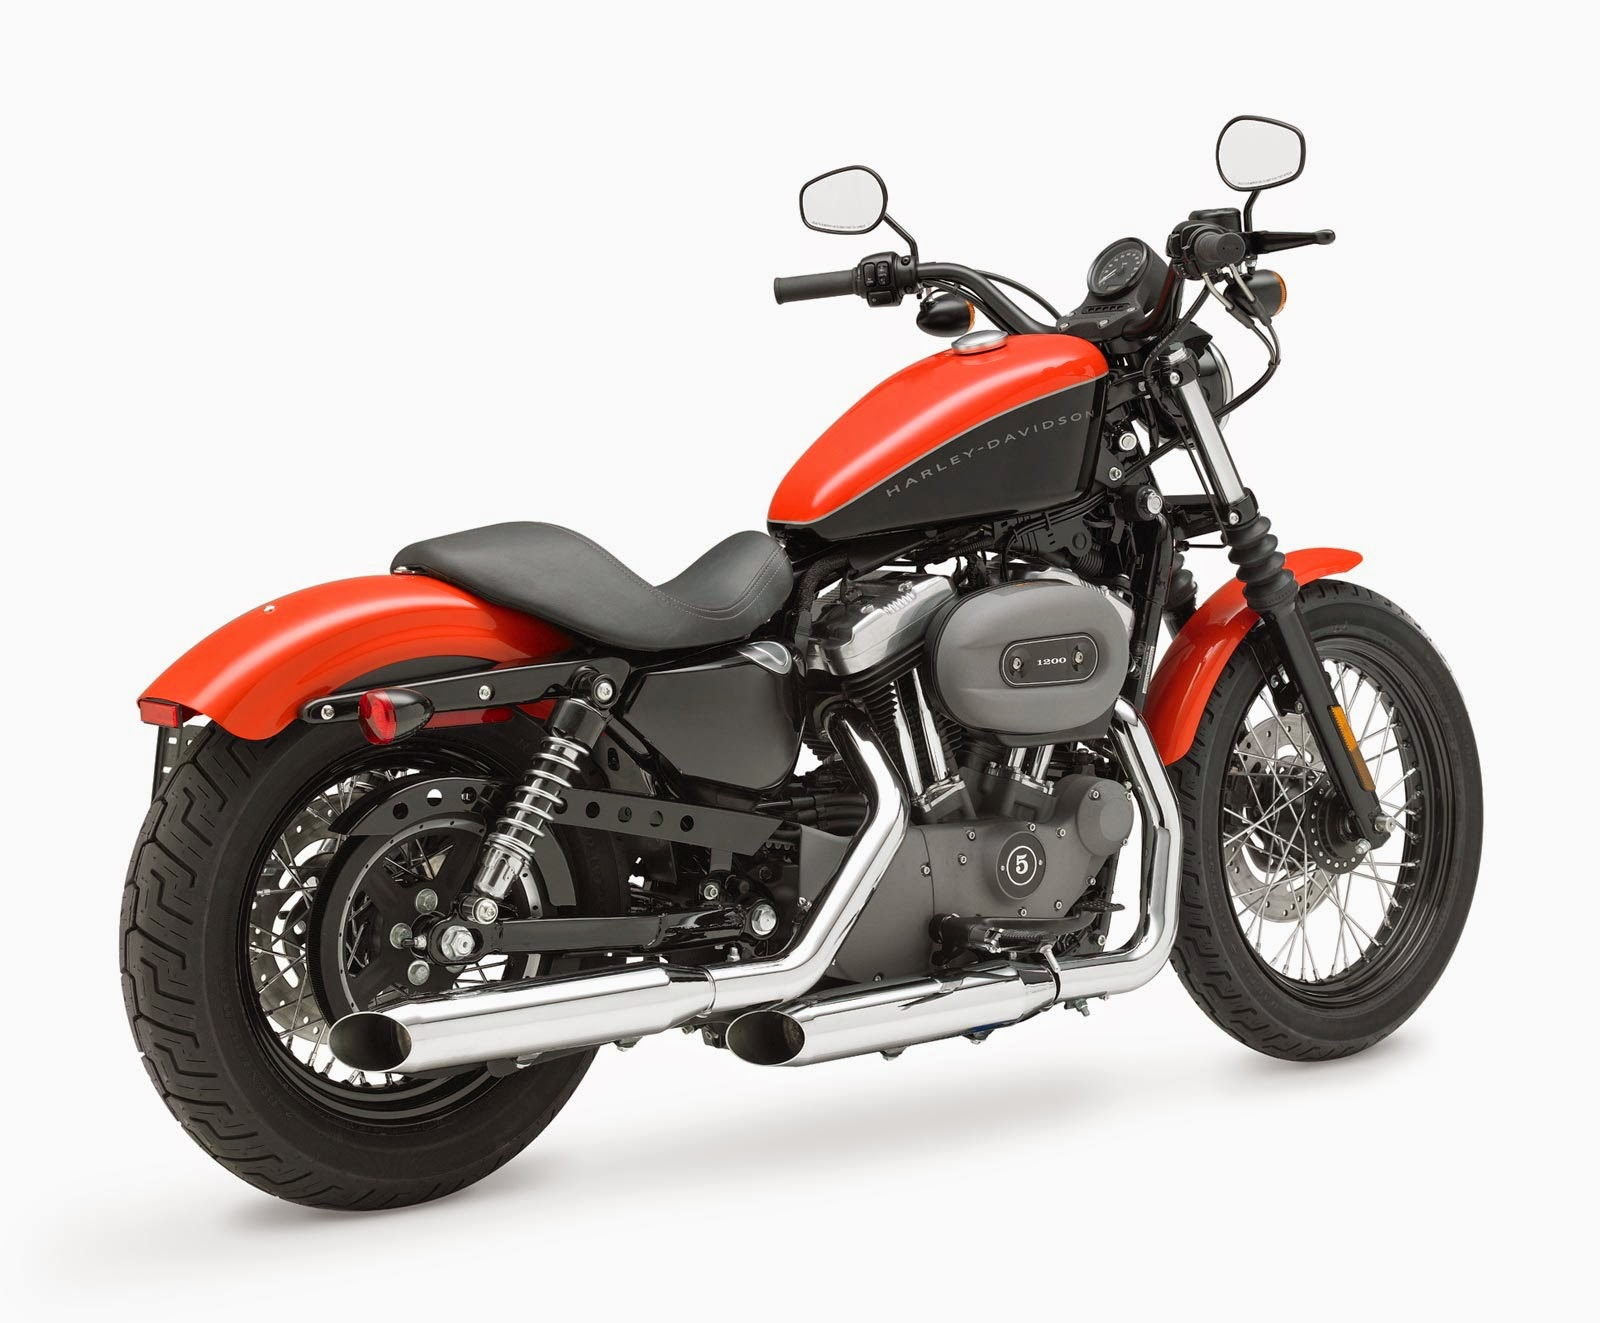 Harley Davidson Sportster Owner S Manual 2008 border=